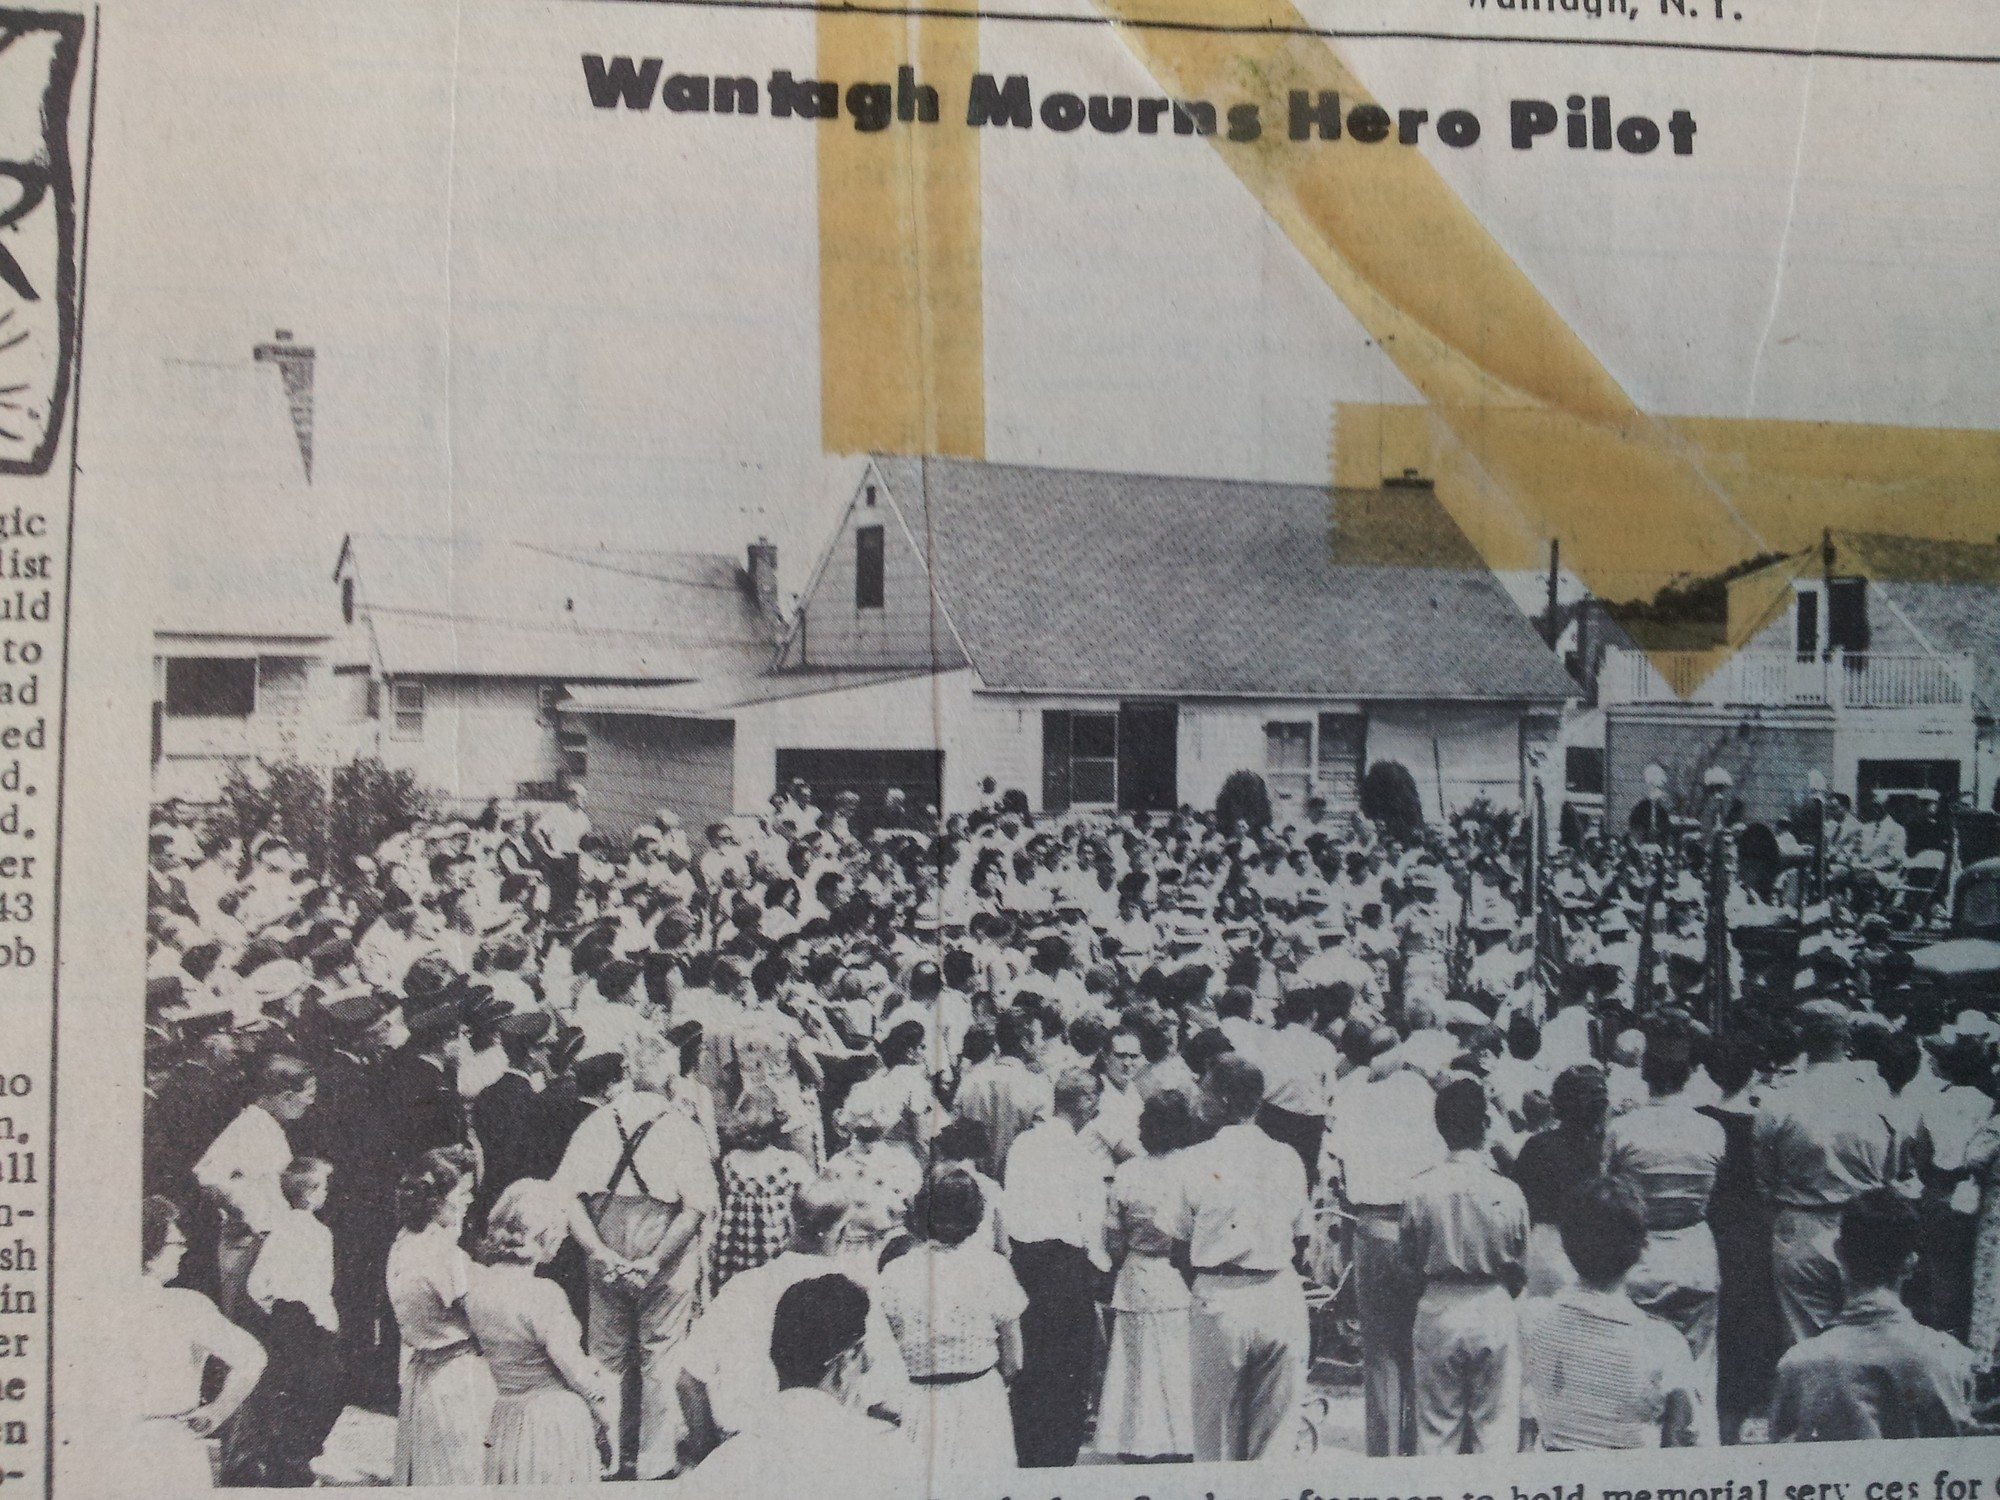 A crowd gathered on Denver Street to mourn the death of the pilot who crashed there in August 1954.